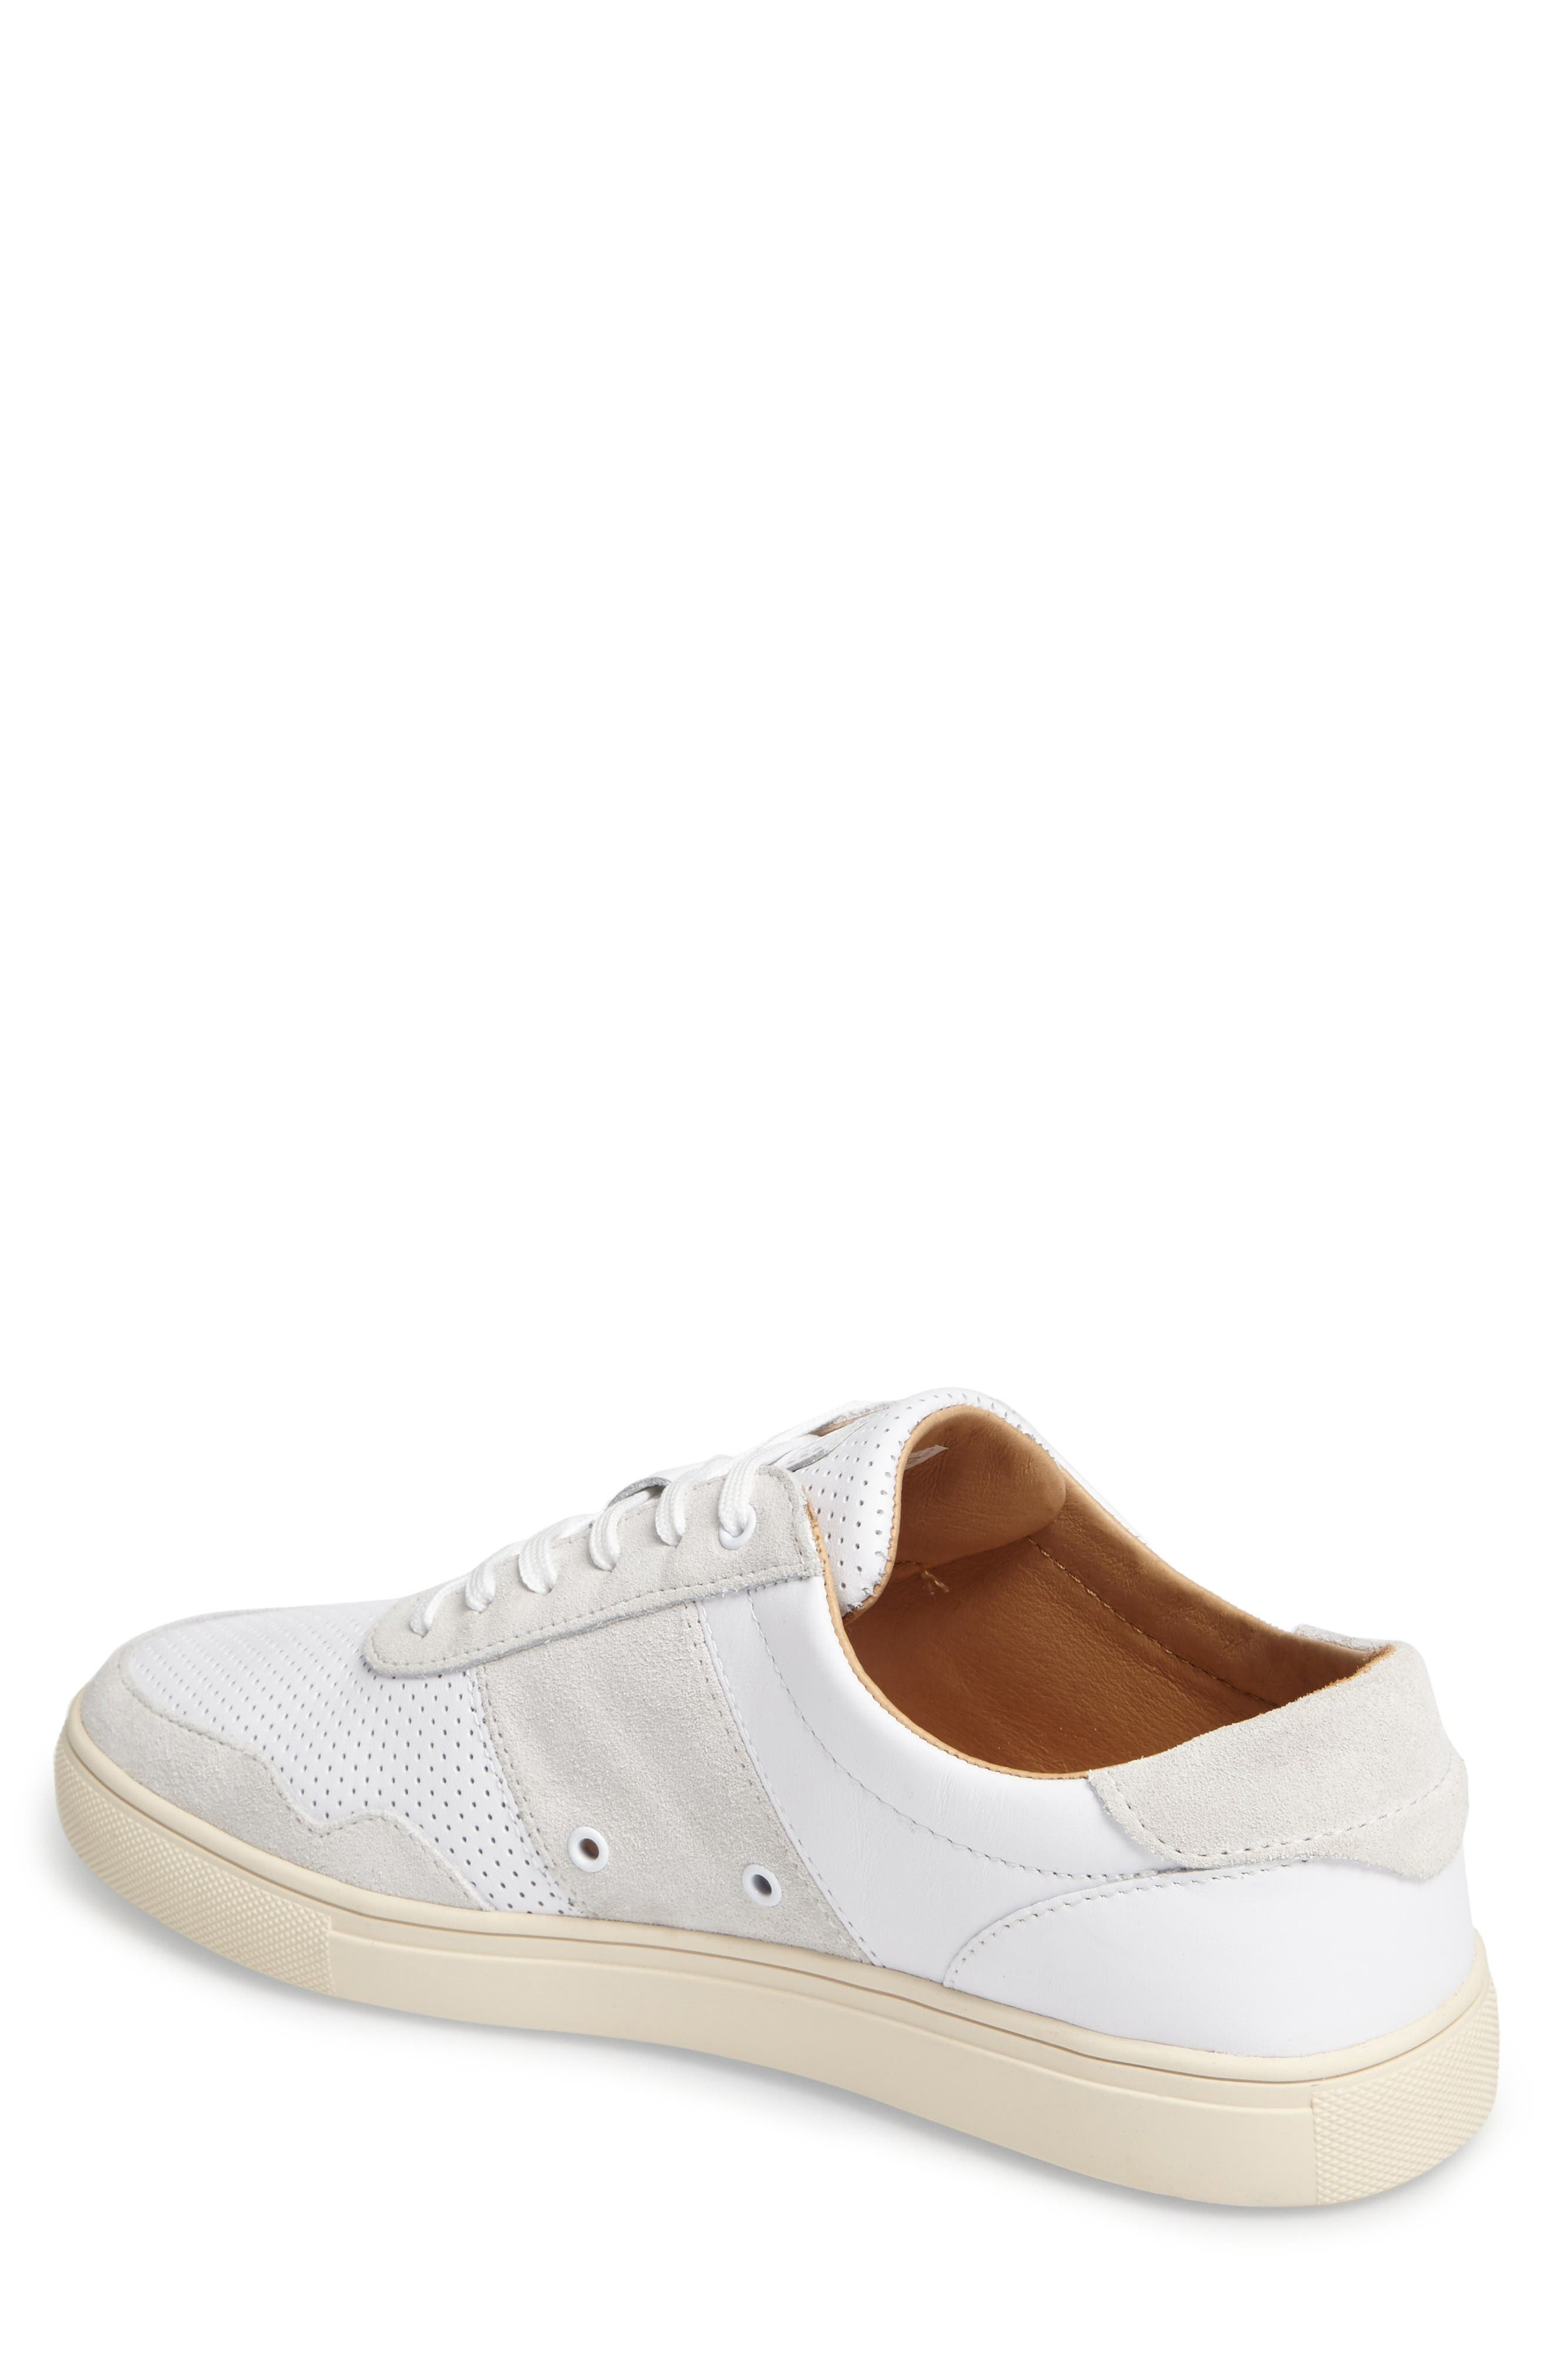 'Gregory' Sneaker,                             Alternate thumbnail 2, color,                             White Leather